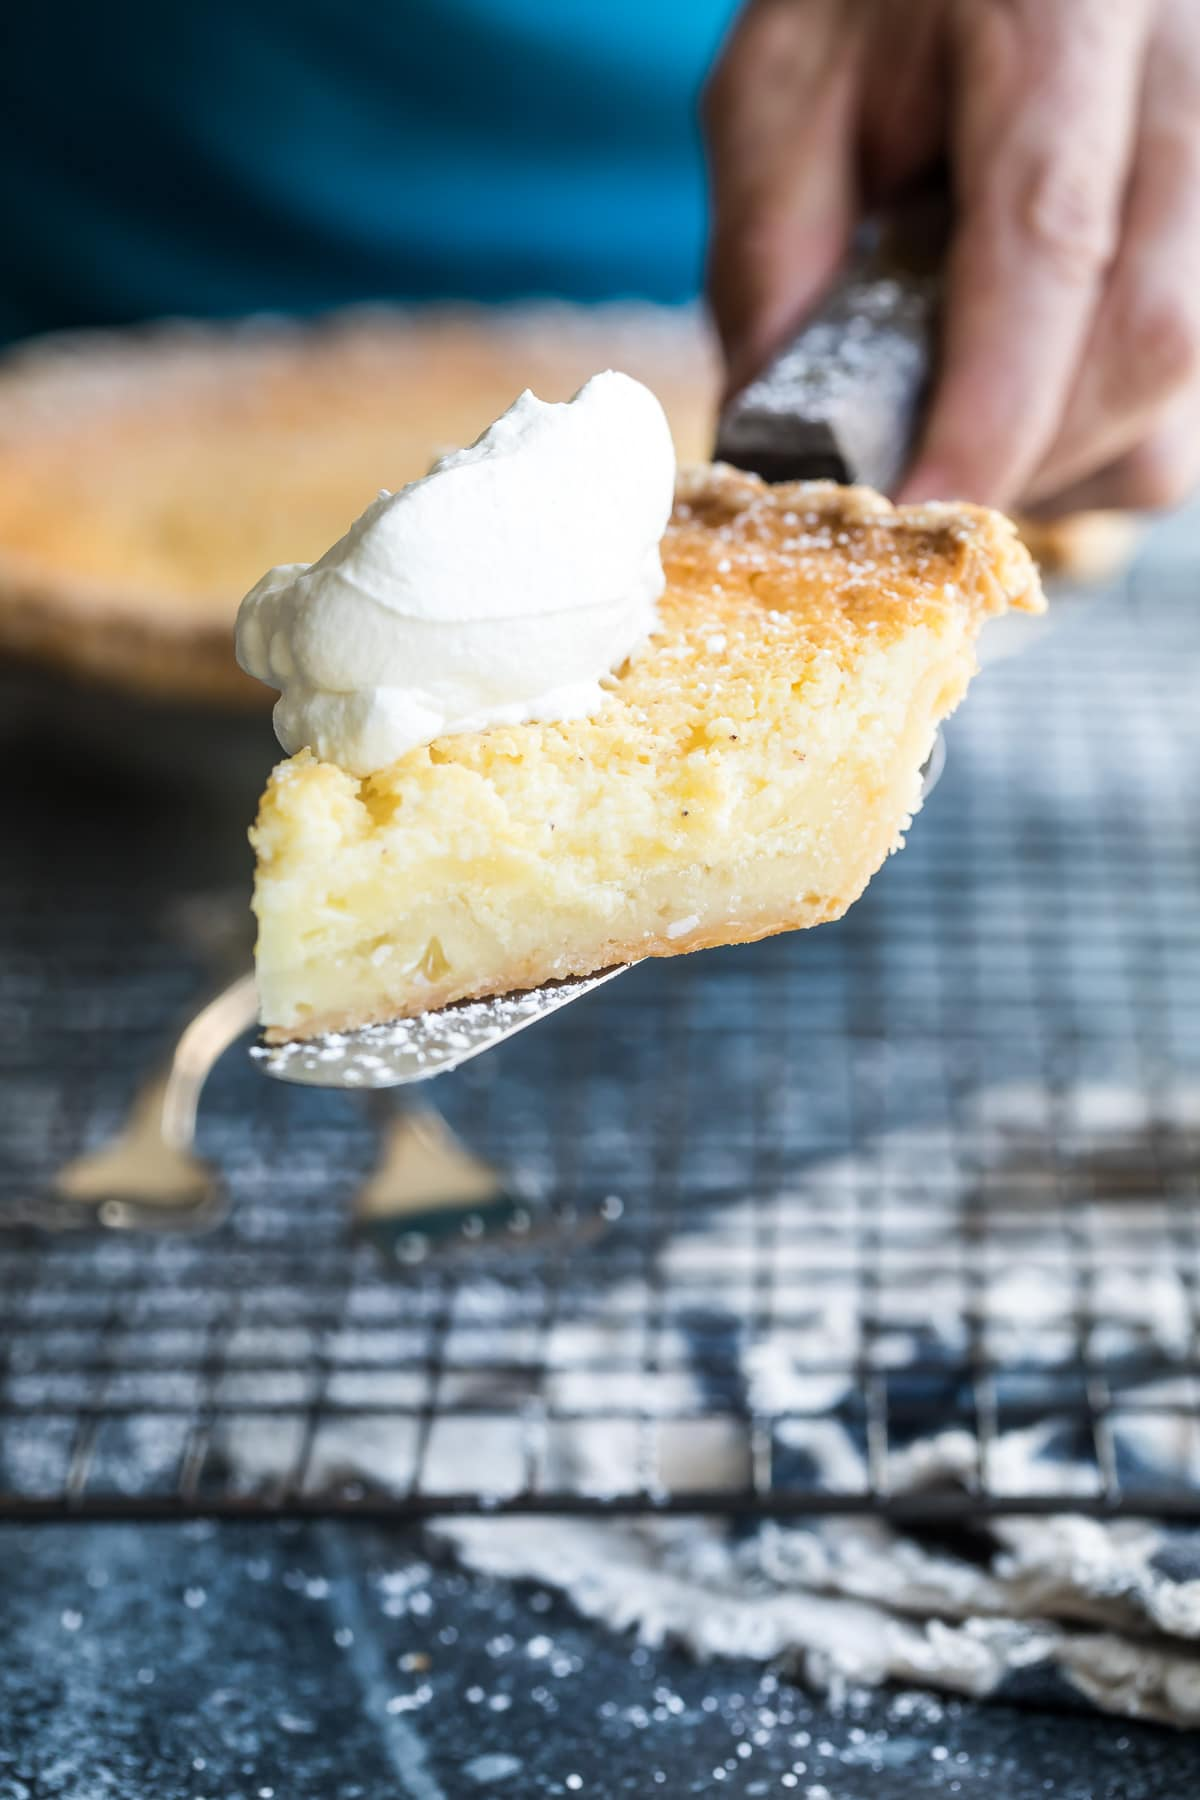 holding a slice of chess pie with a dollop of whipped cream on top of it